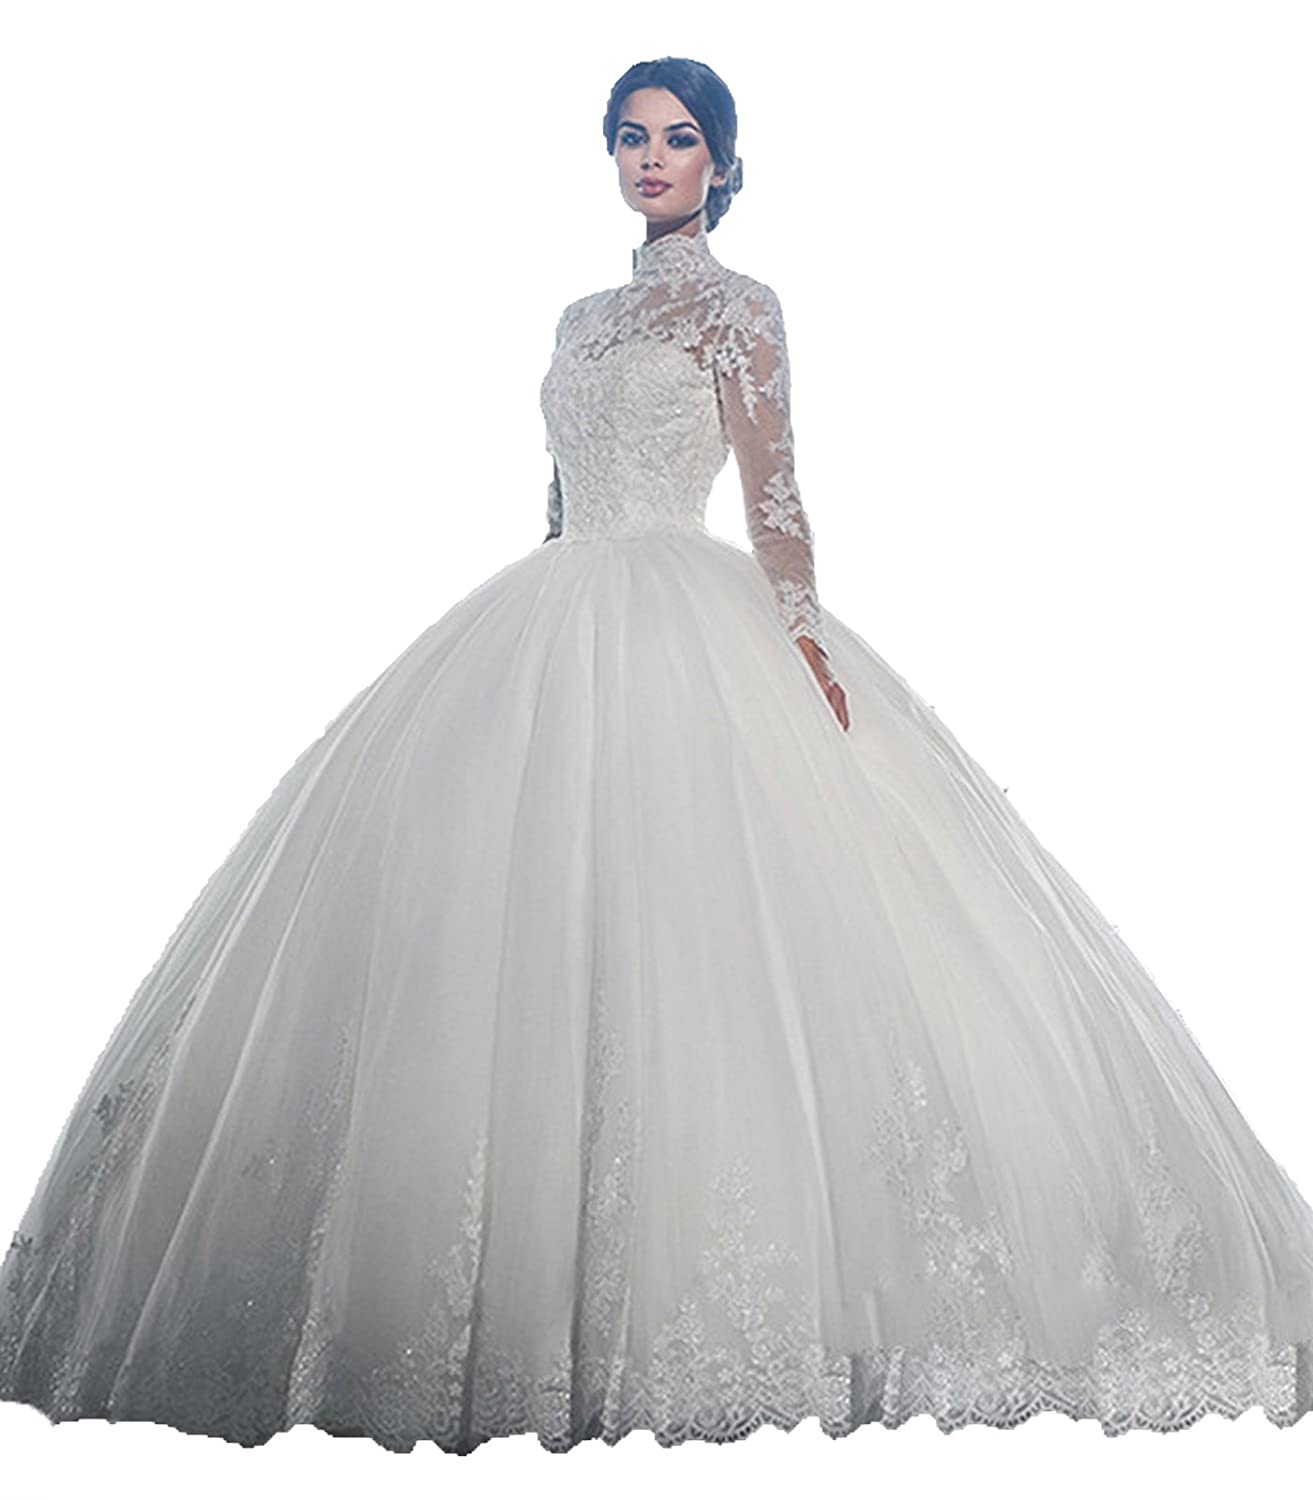 Babygirls Wedding Dress With Applique Tulle High Collar Sheer Long